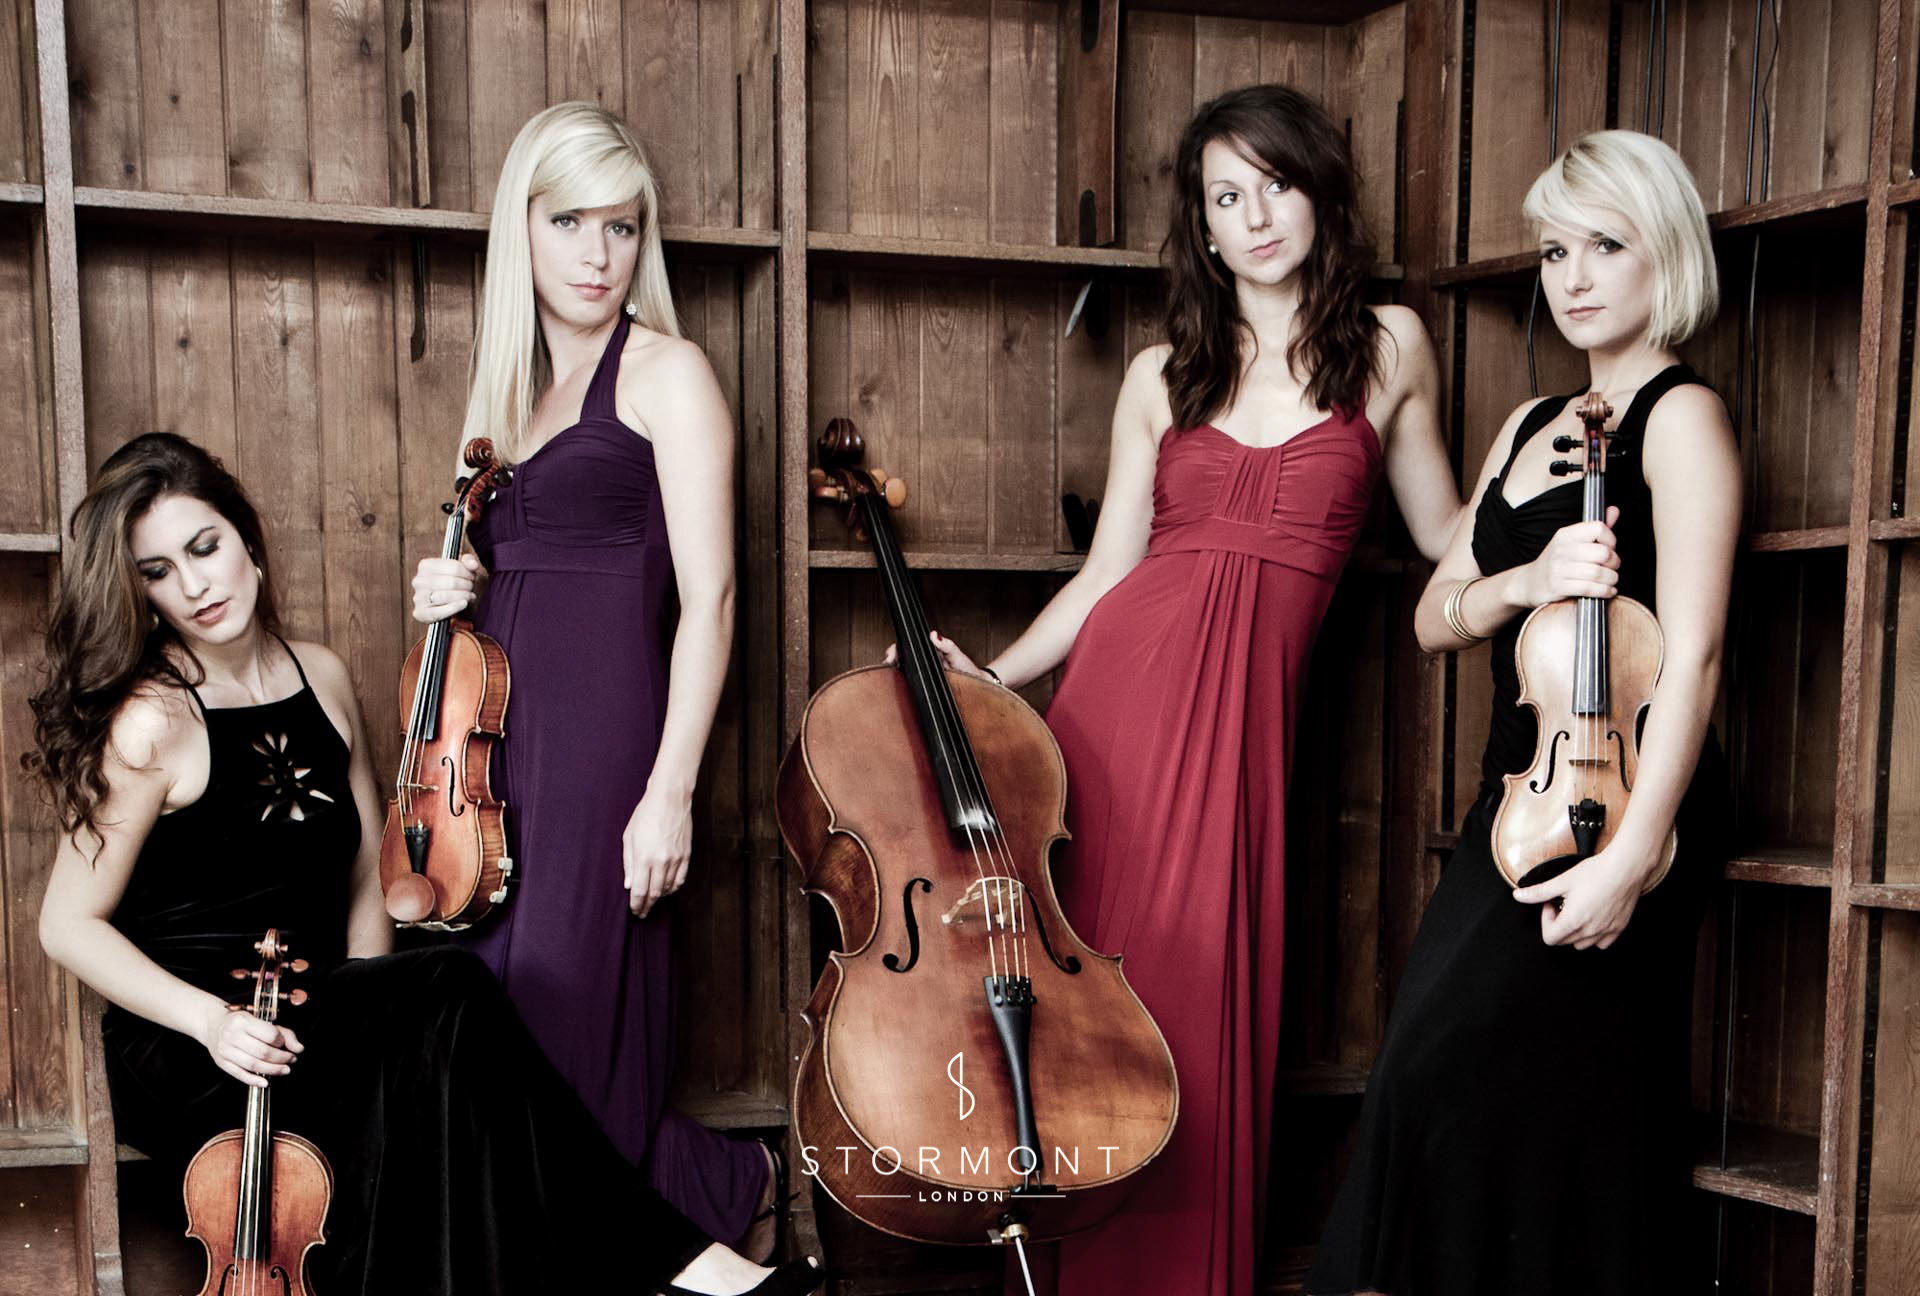 Stormont London — Strings of Grace, wedding string quartet